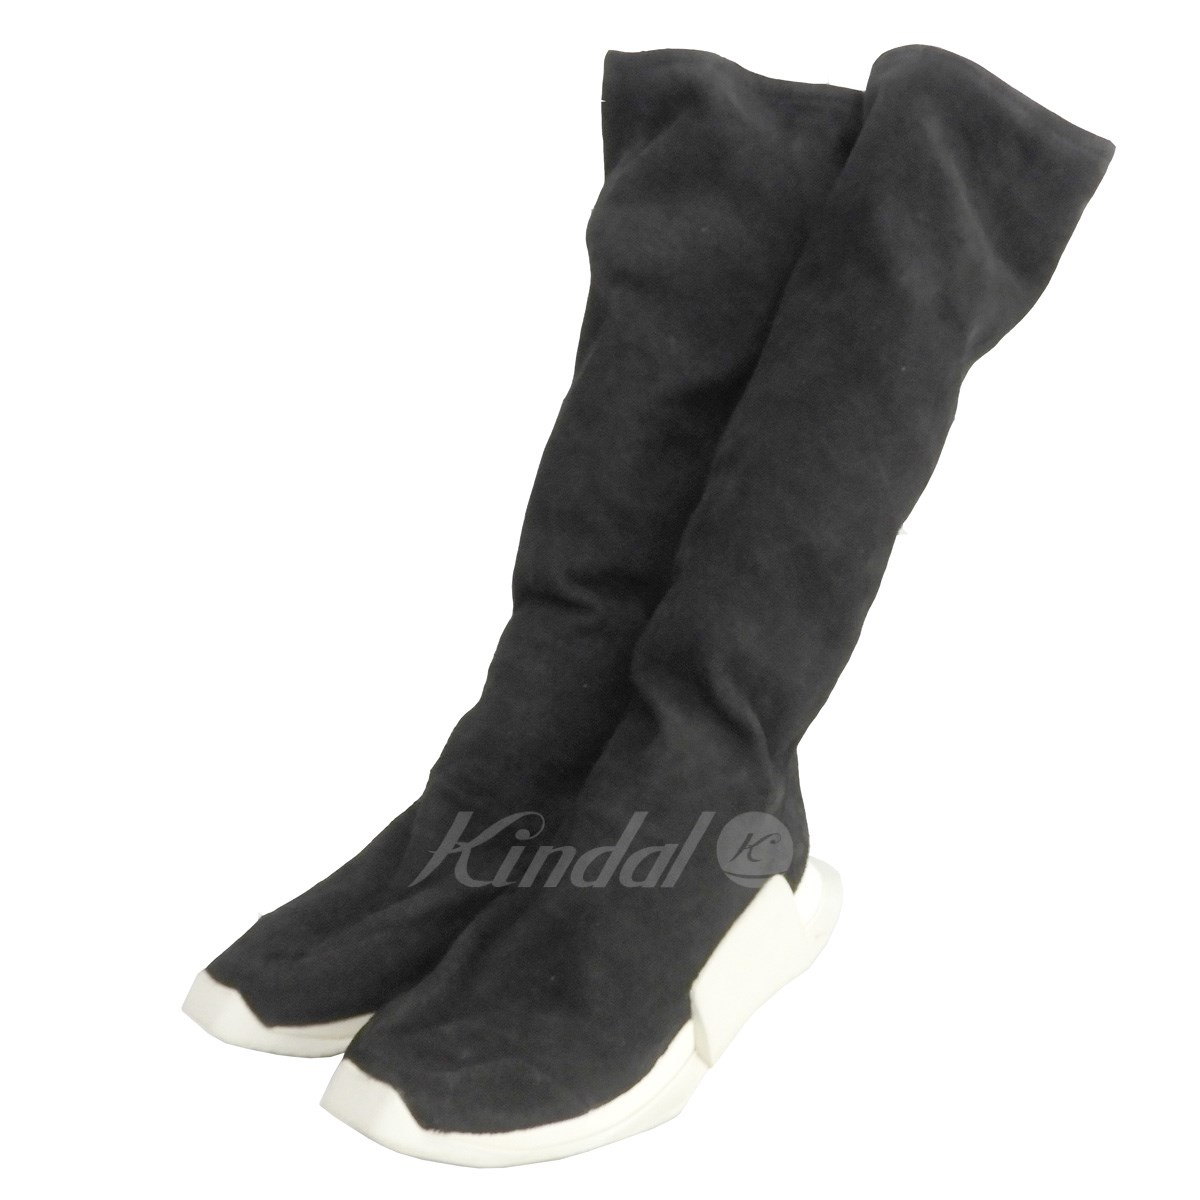 【中古】adidas by Rick Owens 17AW 「RO LEVEL RUNNER BOOT」 【送料無料】 【167849】 【KIND1551】